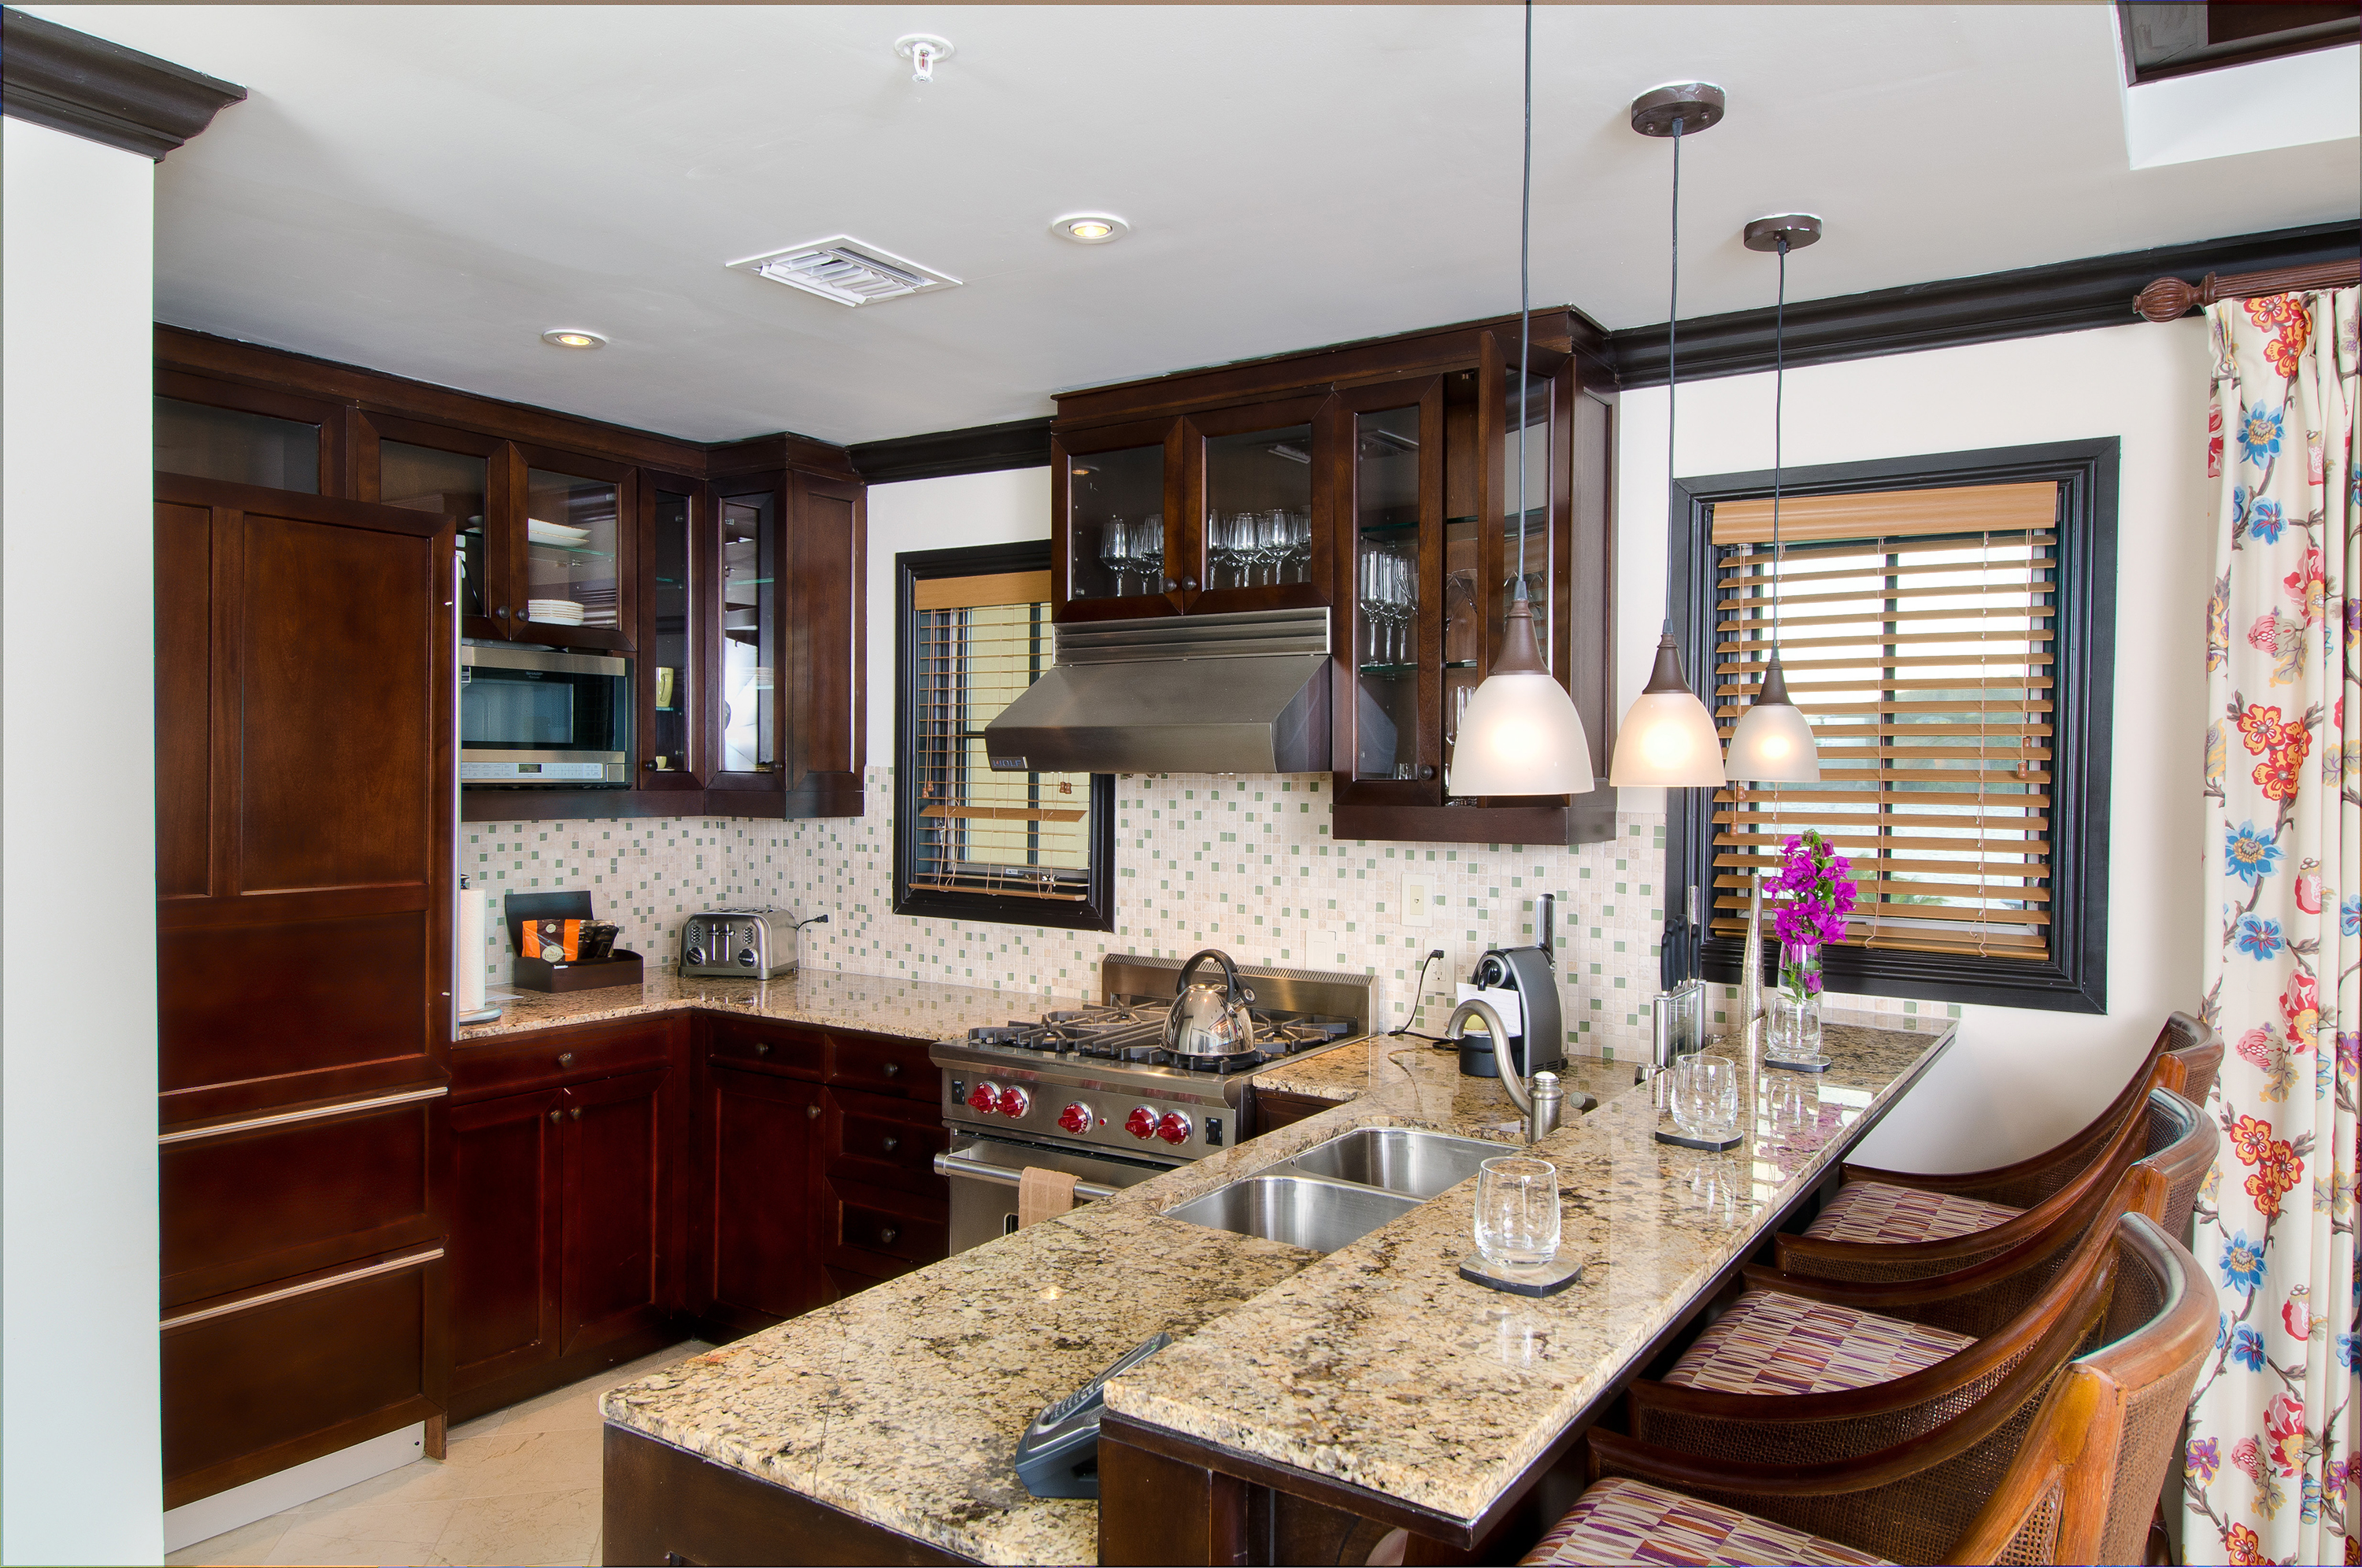 What Is A Kitchen Island With Pictures: File:Gourmet Kitchen Scrub Island Resort, Spa & Marina.jpg